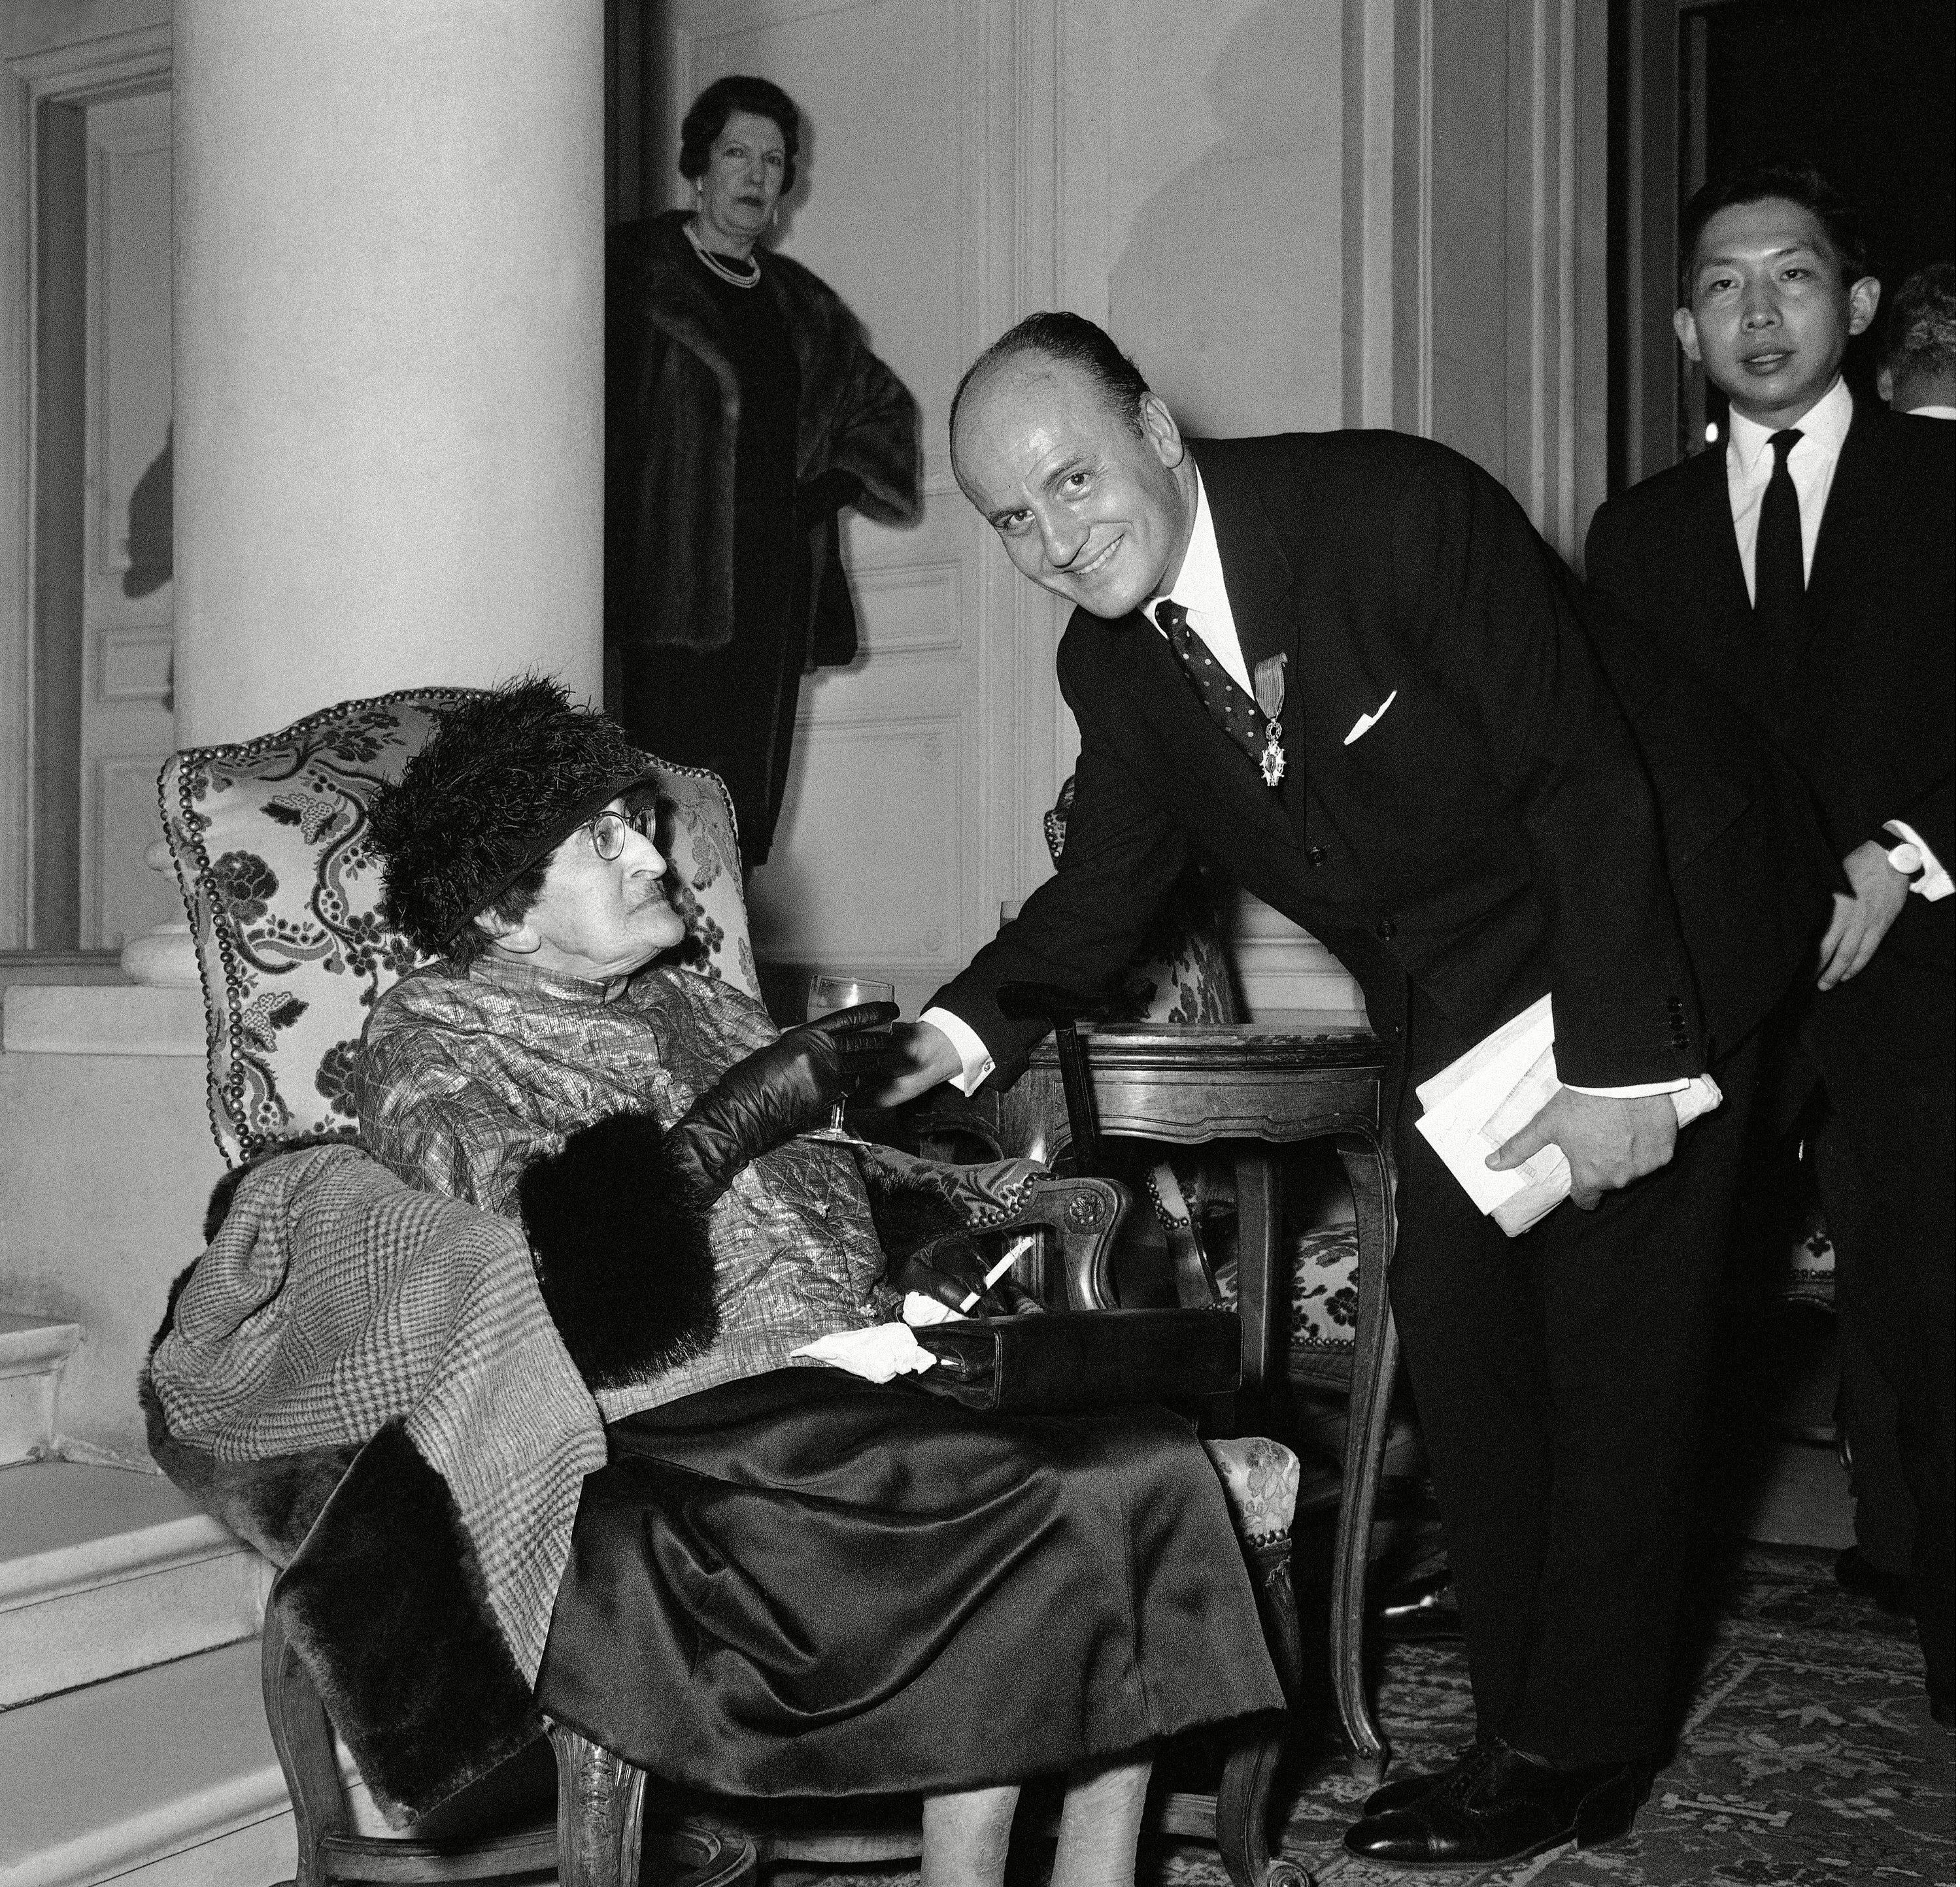 French fashion designer Pierre Balmain shakes hands with American writer Alice B. Toklas after he was awarded the medal of the French Legion of Honor, on by Jean Jacques Guerlain (unseen) at the Ritz Hotel in Paris, France 26 Jan 1962